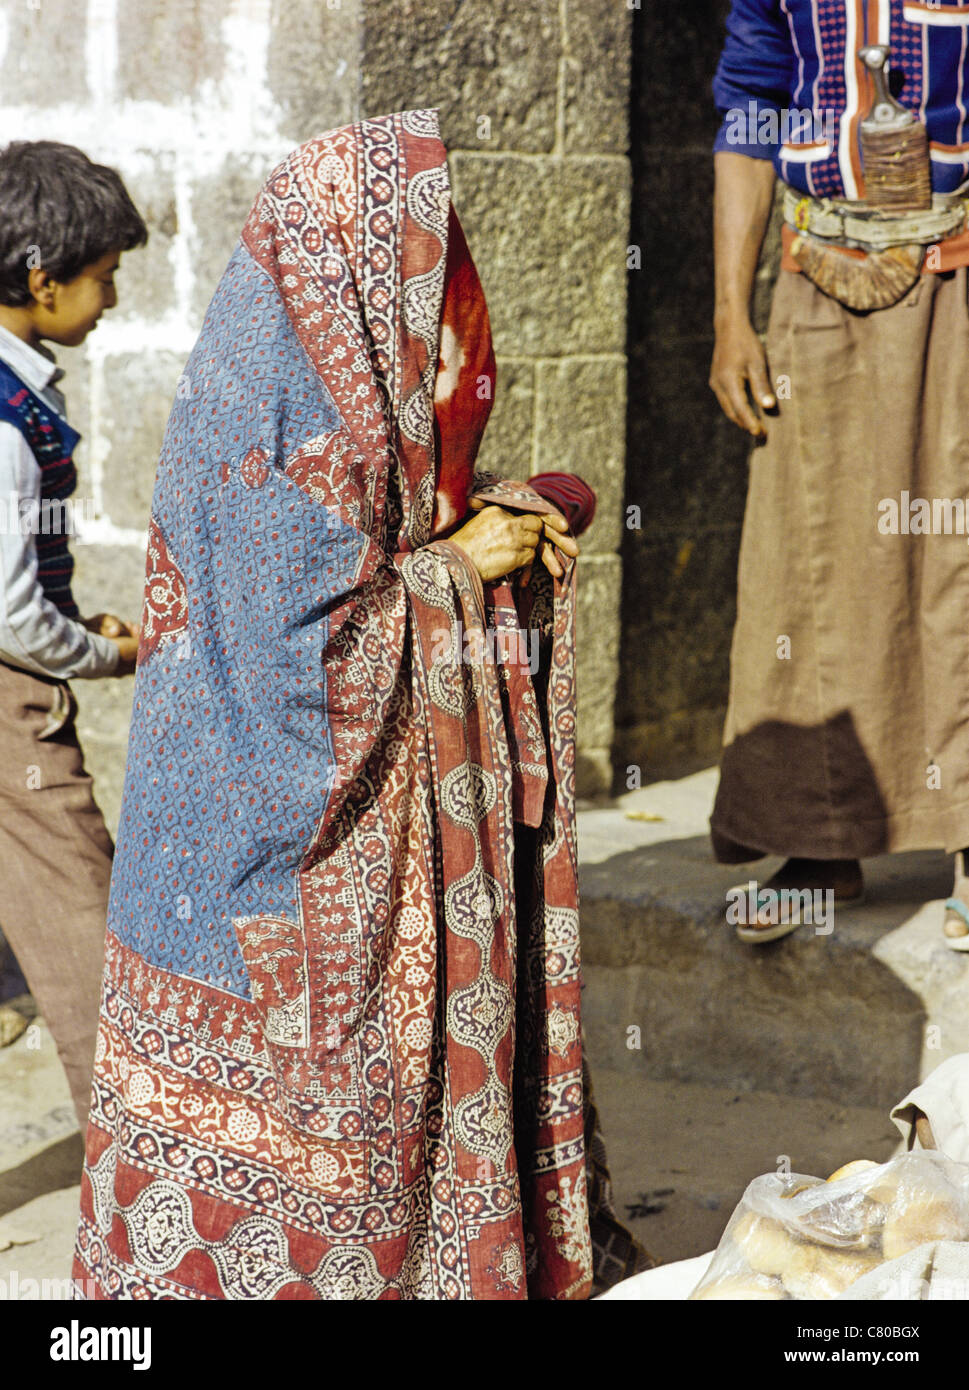 Veiled woman wearing an abaya in the Old City of Sana'a, Yemen - Stock Image